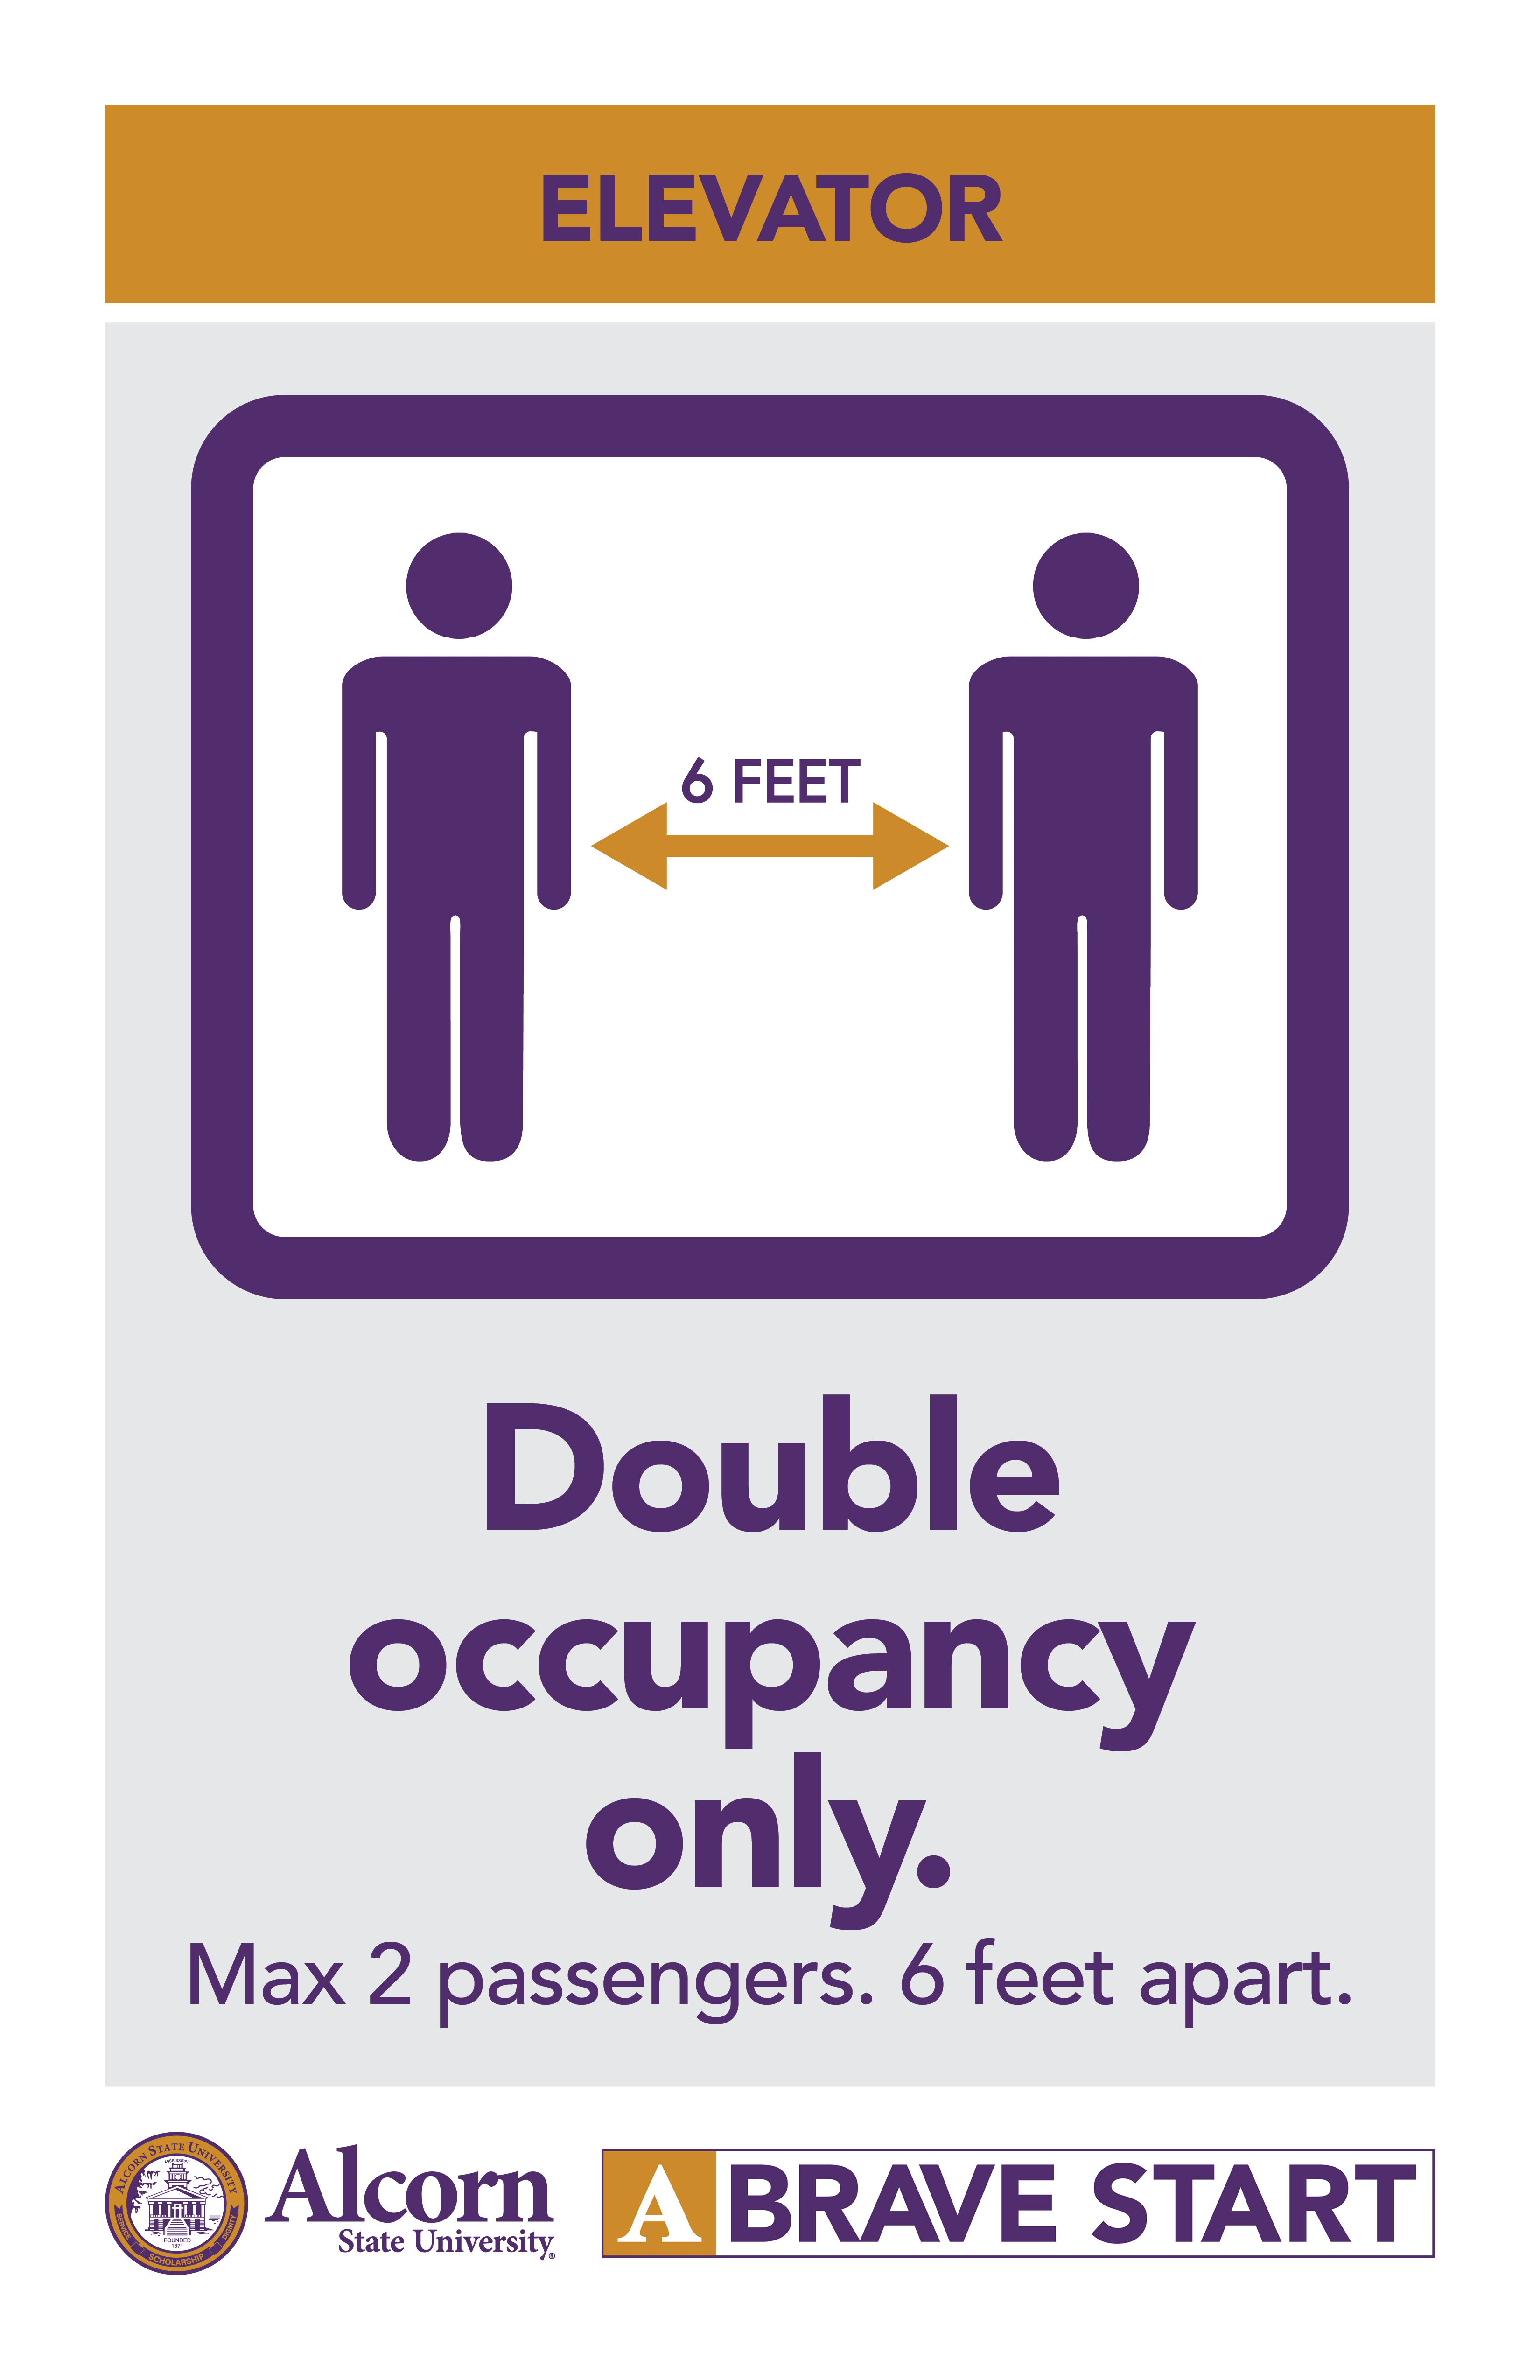 ELEVATOR. (Two people standing six feet apart in an elevator) Double occupancy only. Max 2 passengers. 6 feet apart. (Alcorn logo mark. A Brave Start logo mark.)